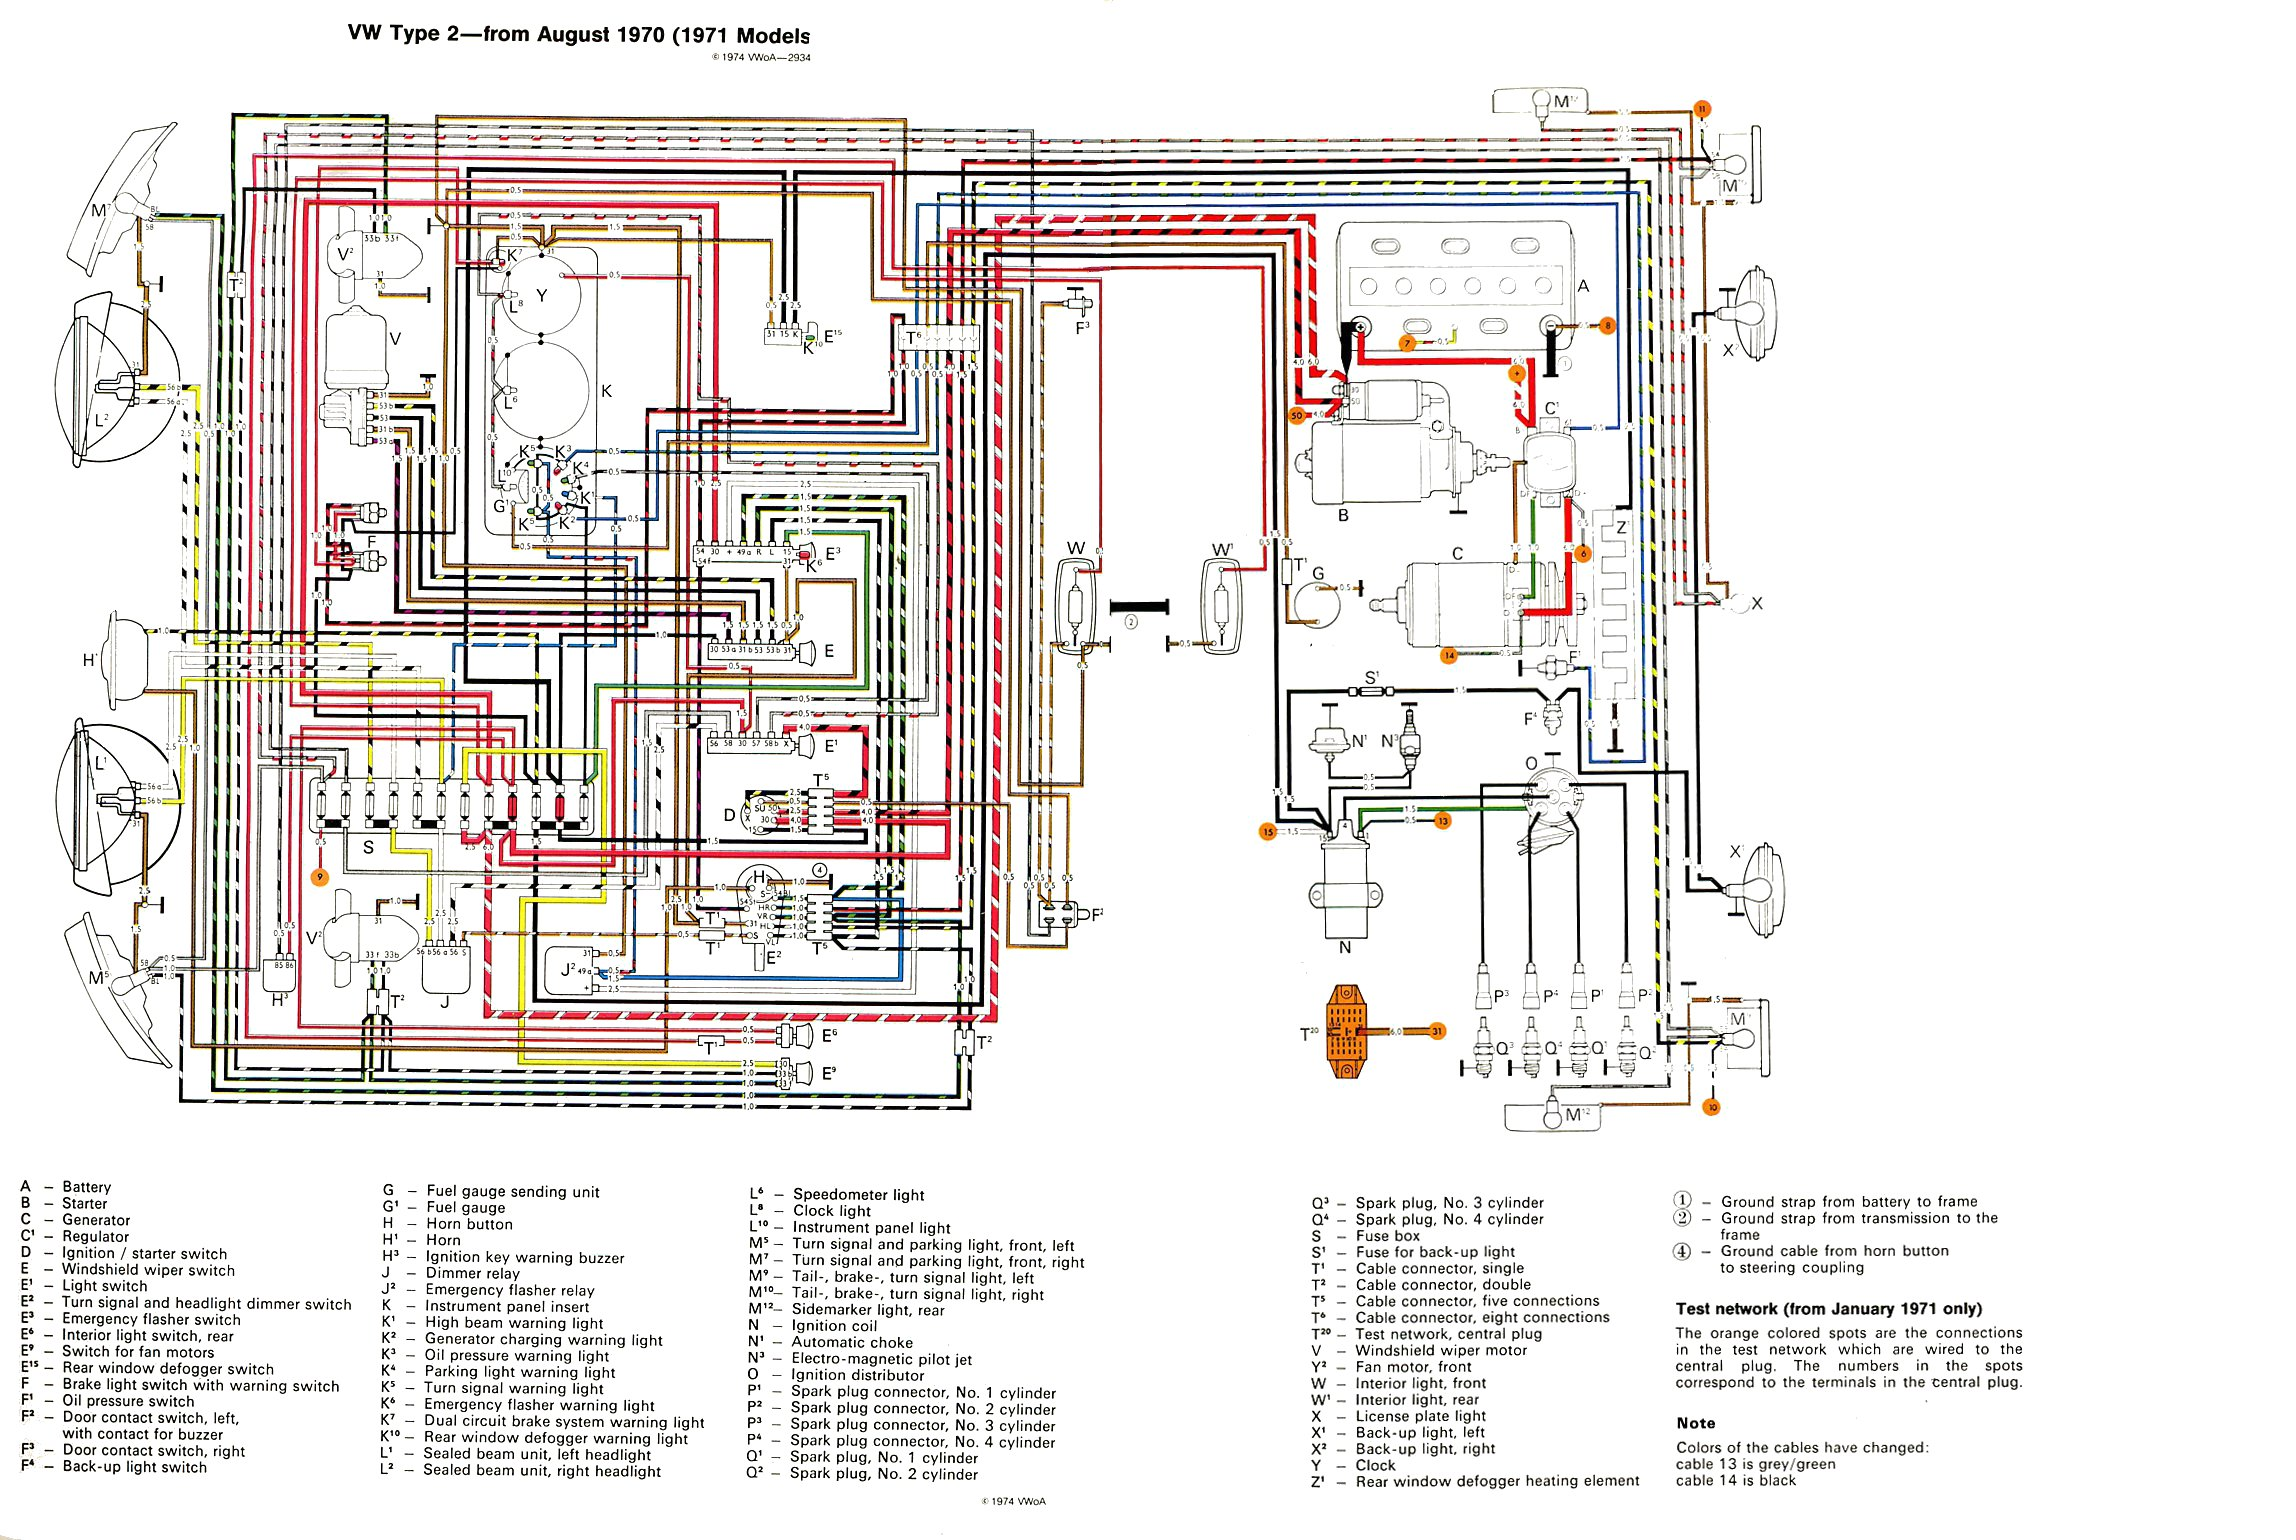 thesamba com type 2 wiring diagrams rh thesamba com Ranger Wiring Diagram Hydra-Sports Wiring Diagram 1997 LS175